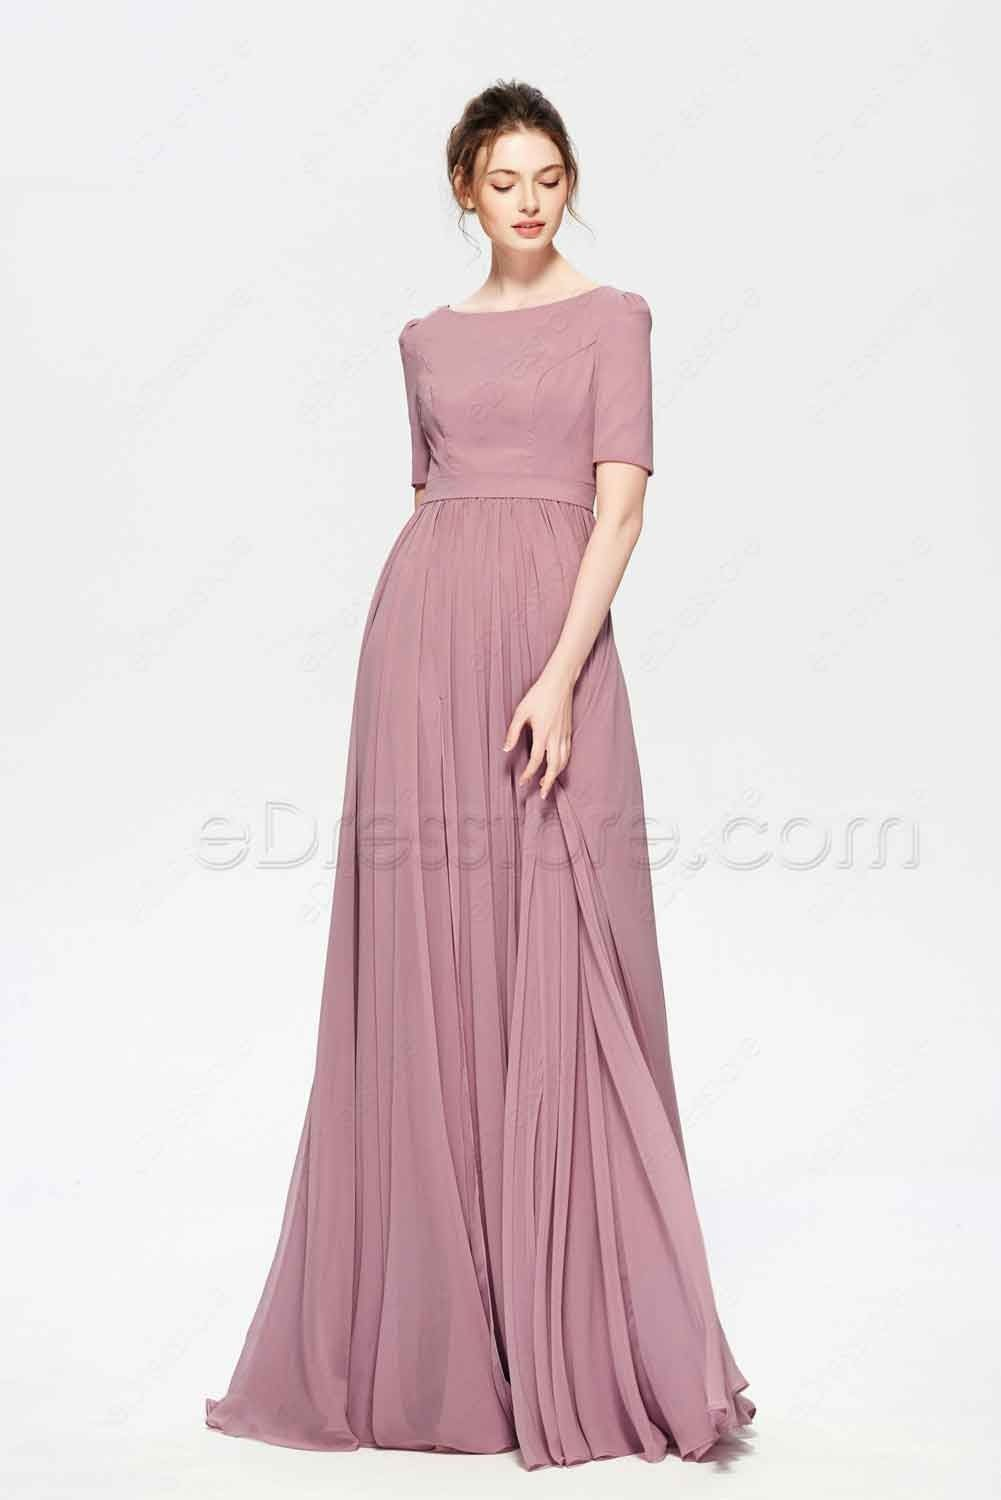 ead08942553 Dusty Rose Color Modest Bridesmaid Dress Elbow Sleeves